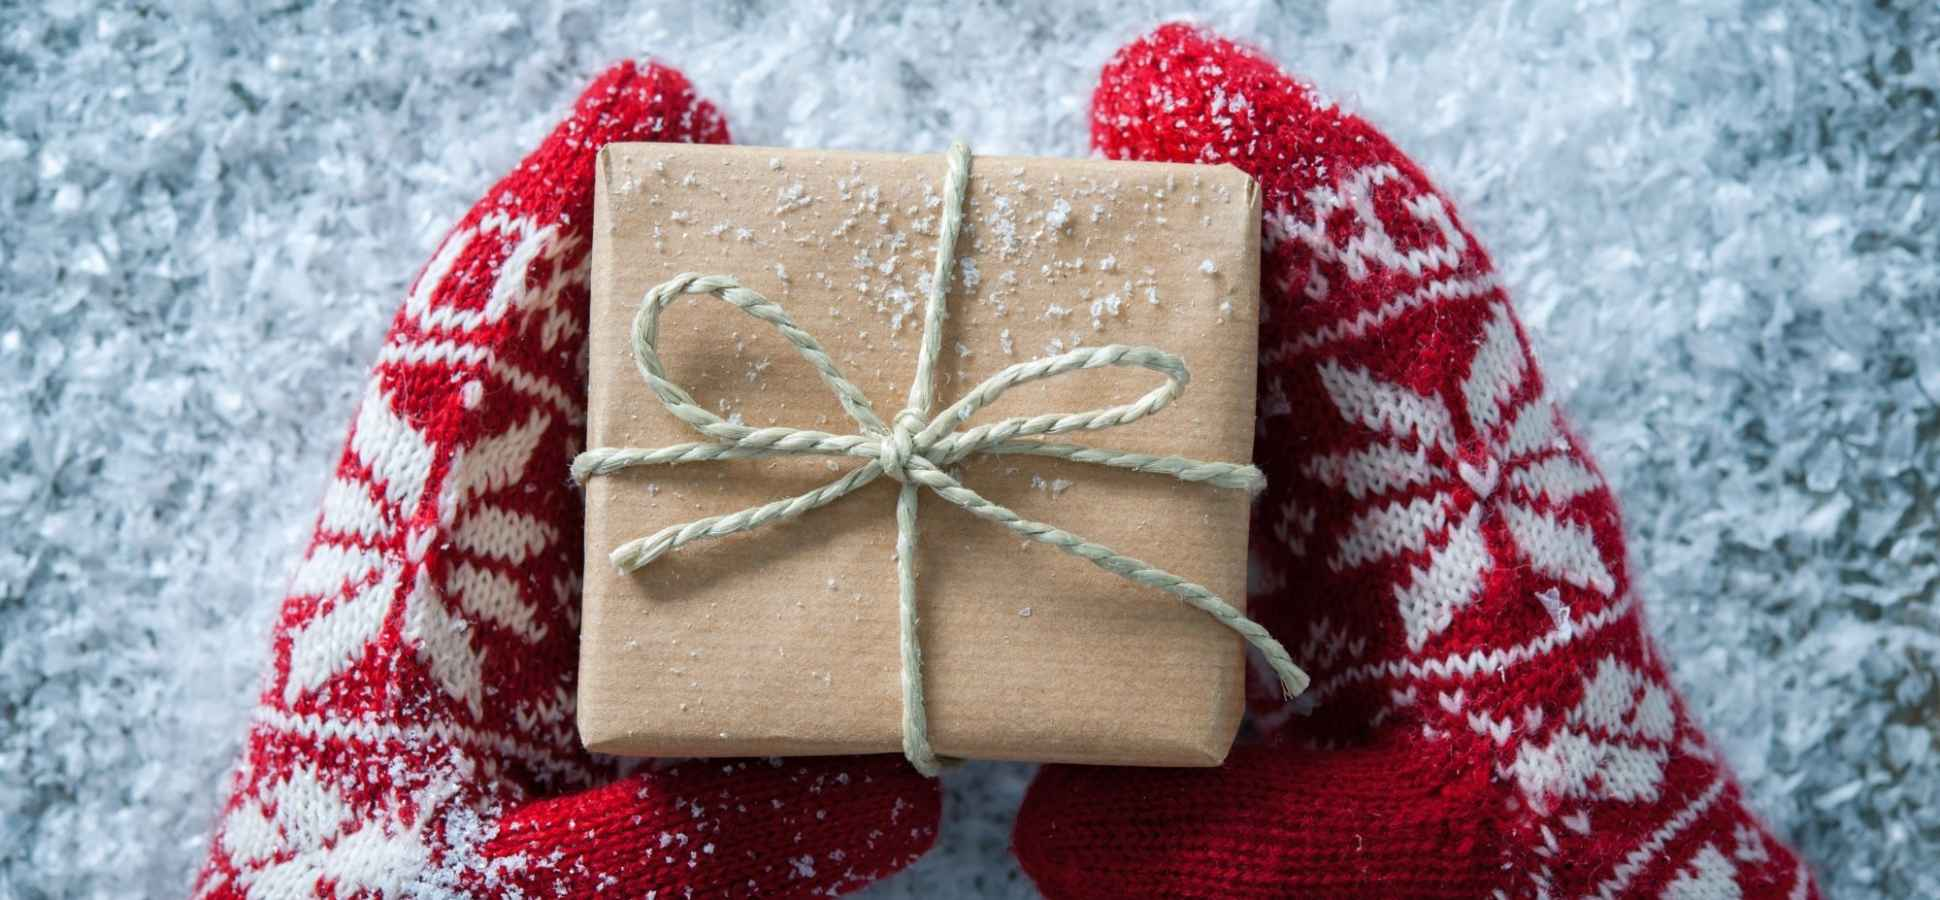 Want More Love? 10 Easy Ways to Practice Self-Compassion This Holiday Season